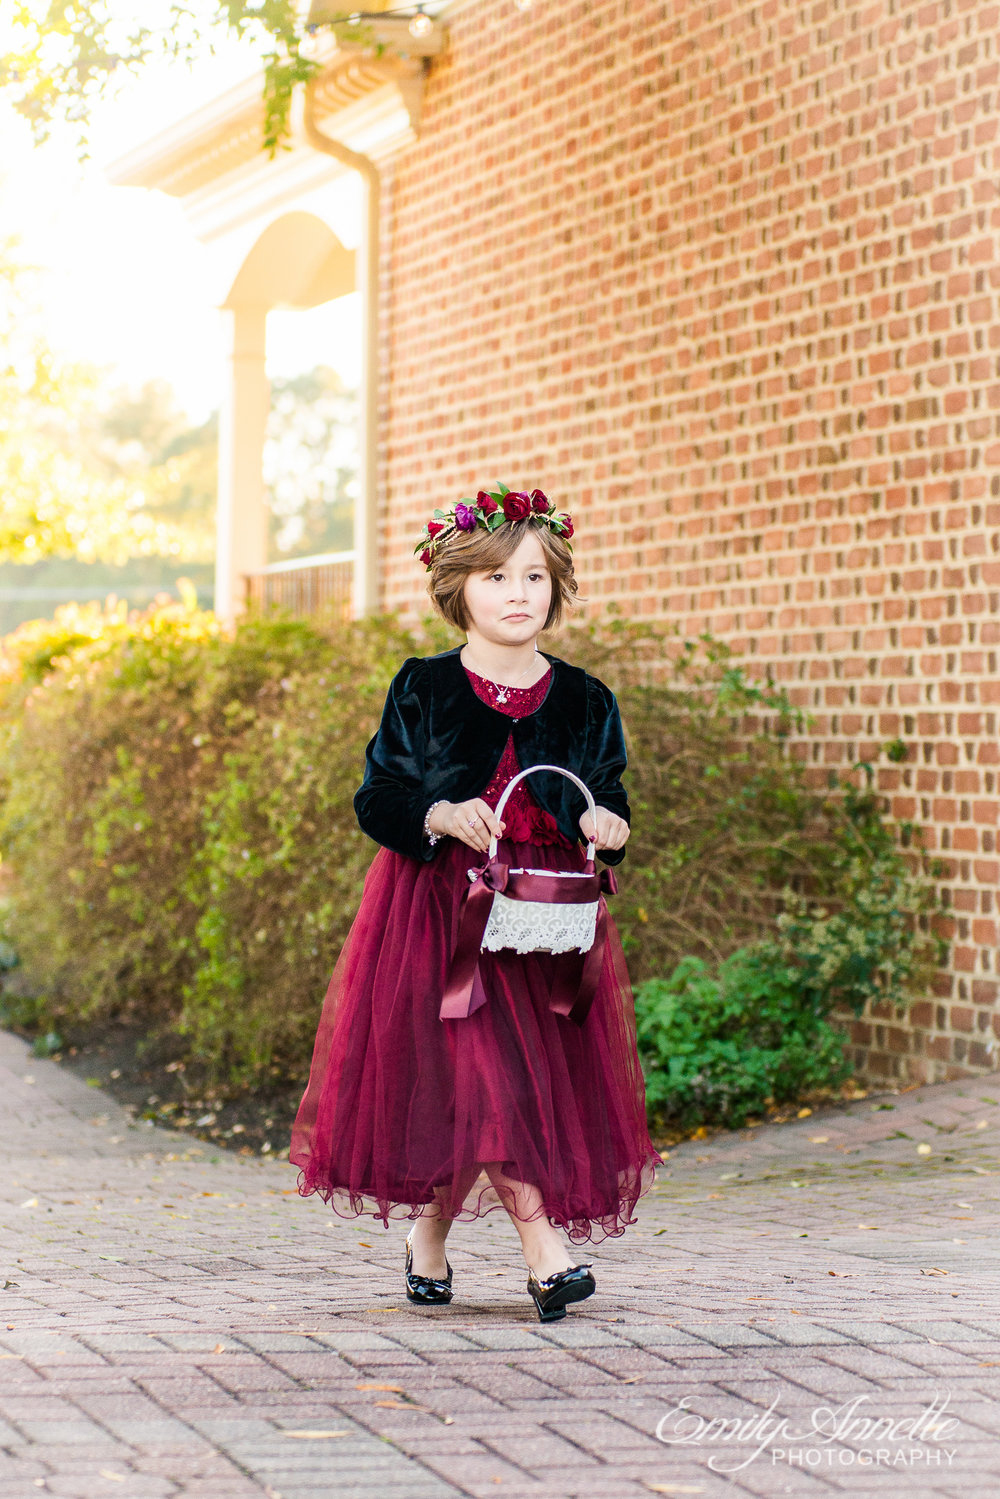 A flower girl in a red dress and flower crown walking into the wedding ceremony at Willow Oaks Country Club in Richmond, Virginia